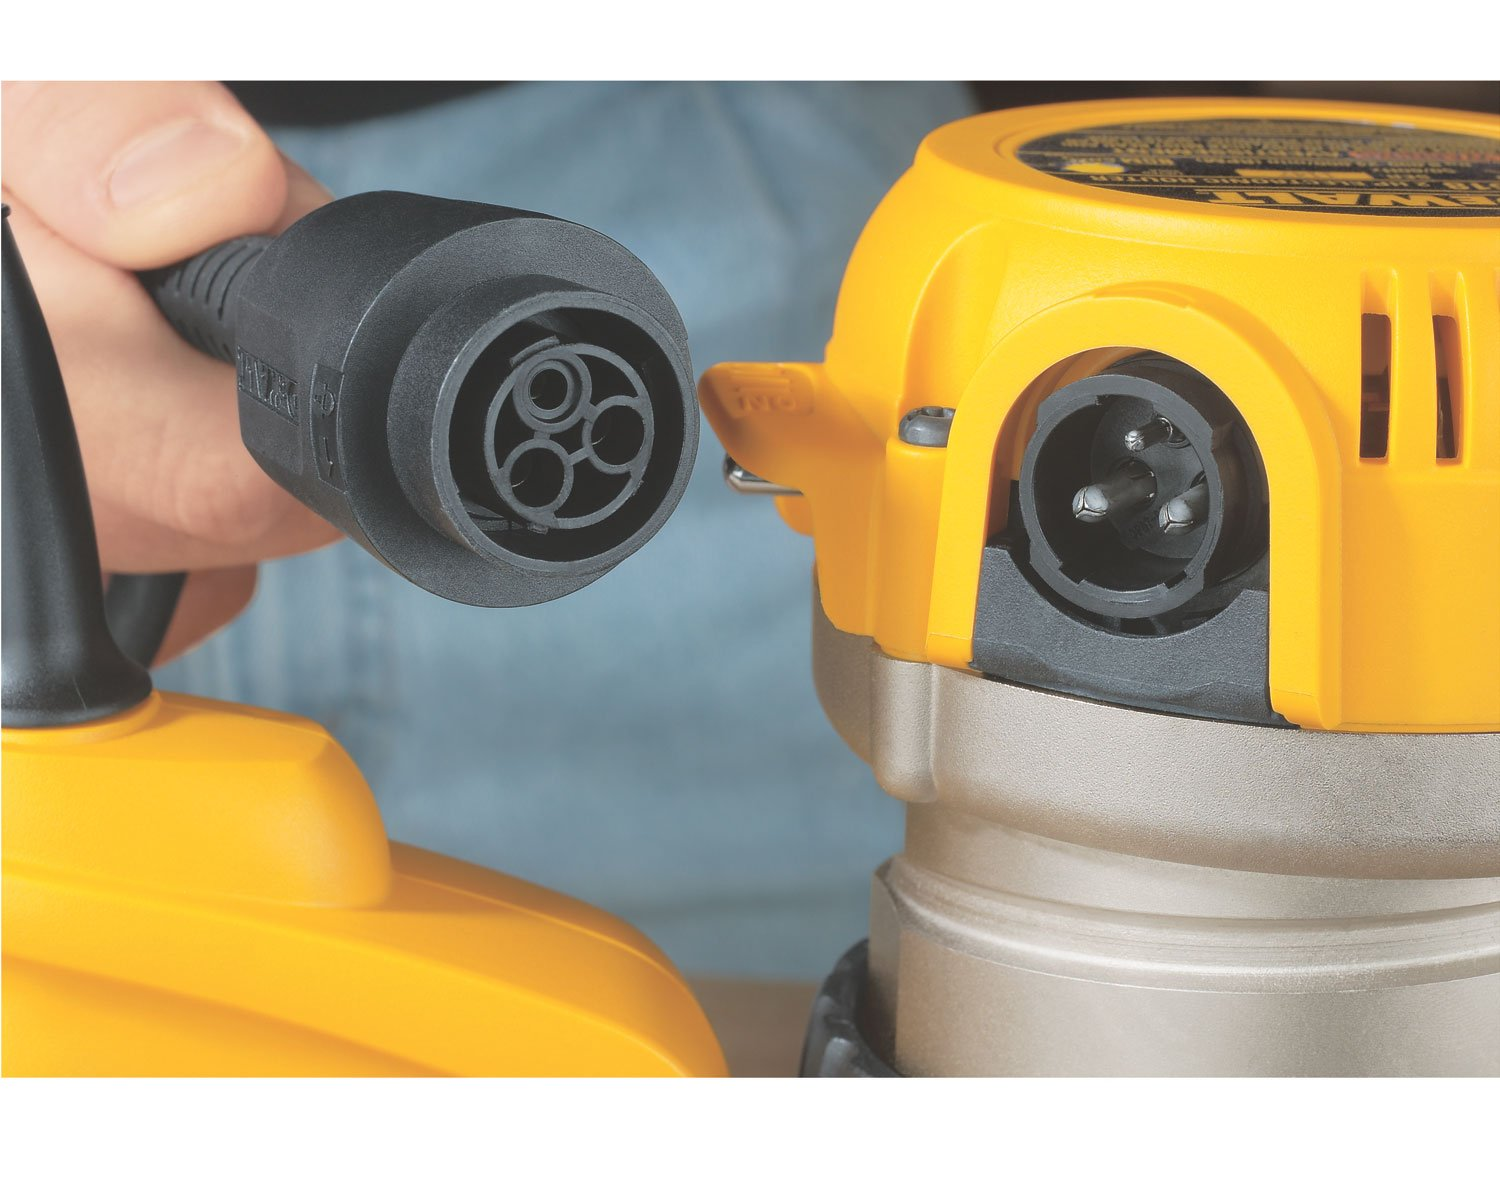 DEWALT DW618 2-1/4 HP Electronic Variable-Speed Fixed-Base Router by DEWALT (Image #4)